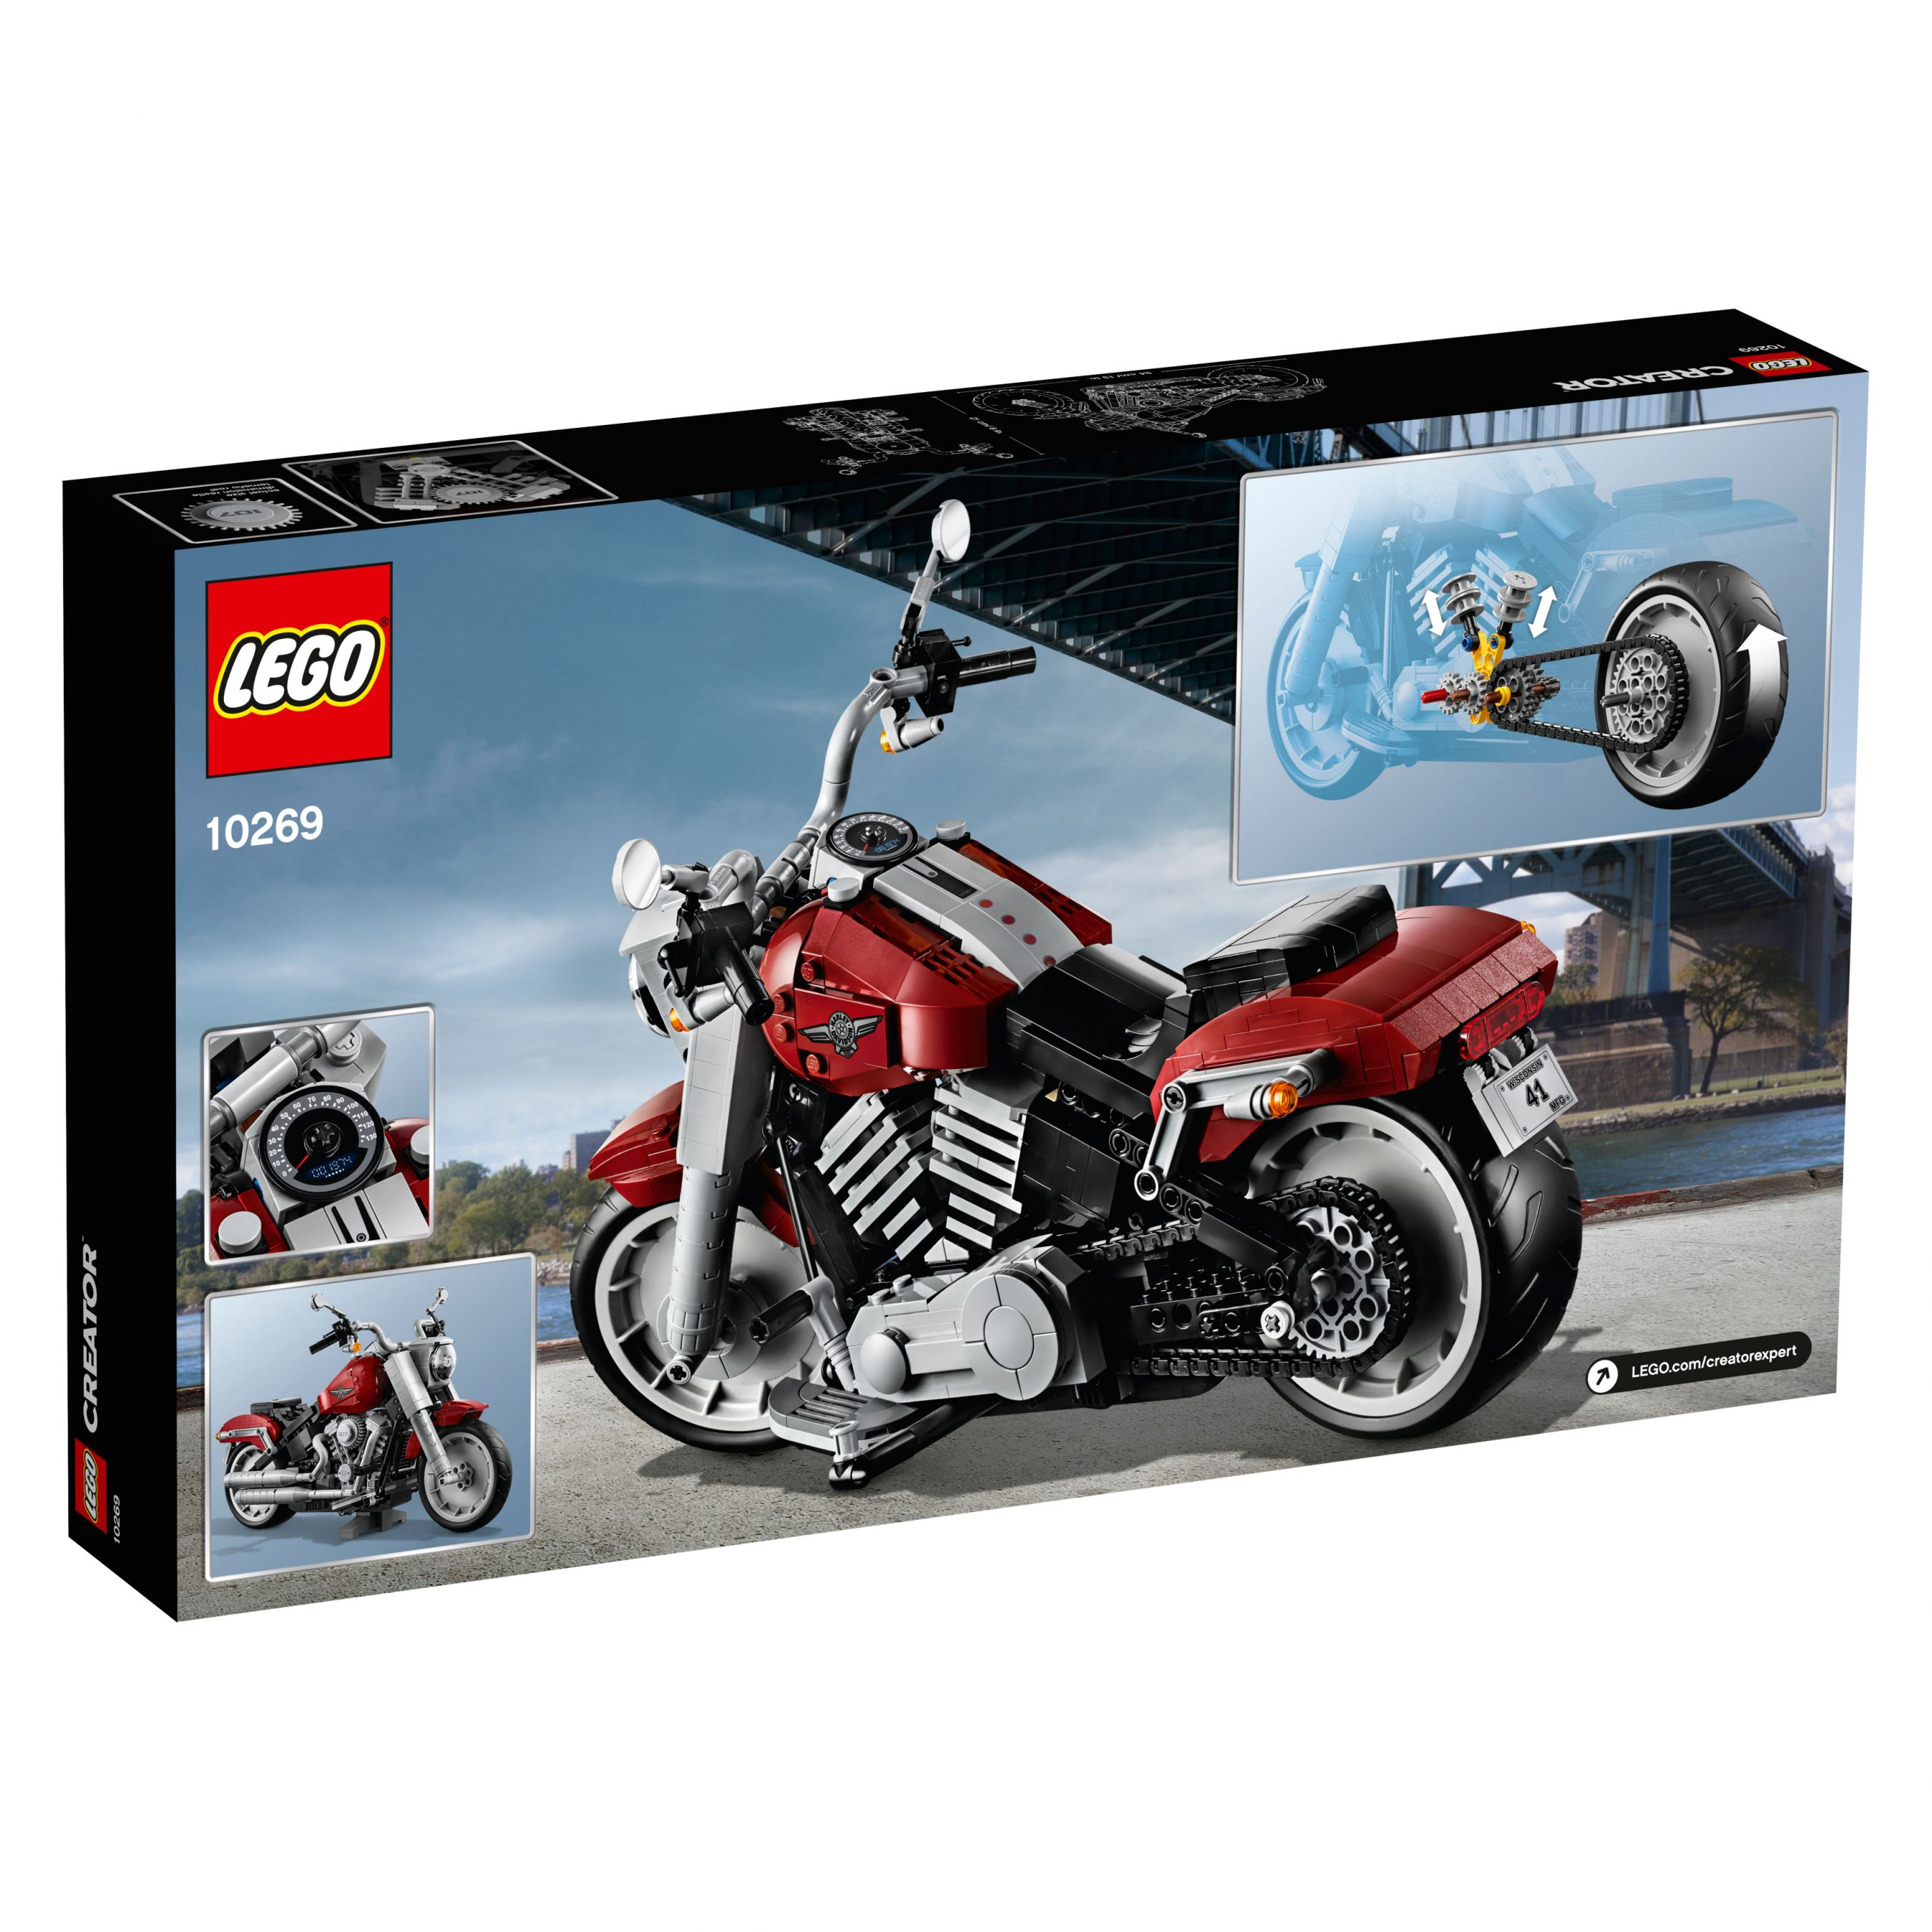 LEGO Advanced Models 10269 Harley-Davidson® Fat Boy® LEGO_10269_alt6.jpg